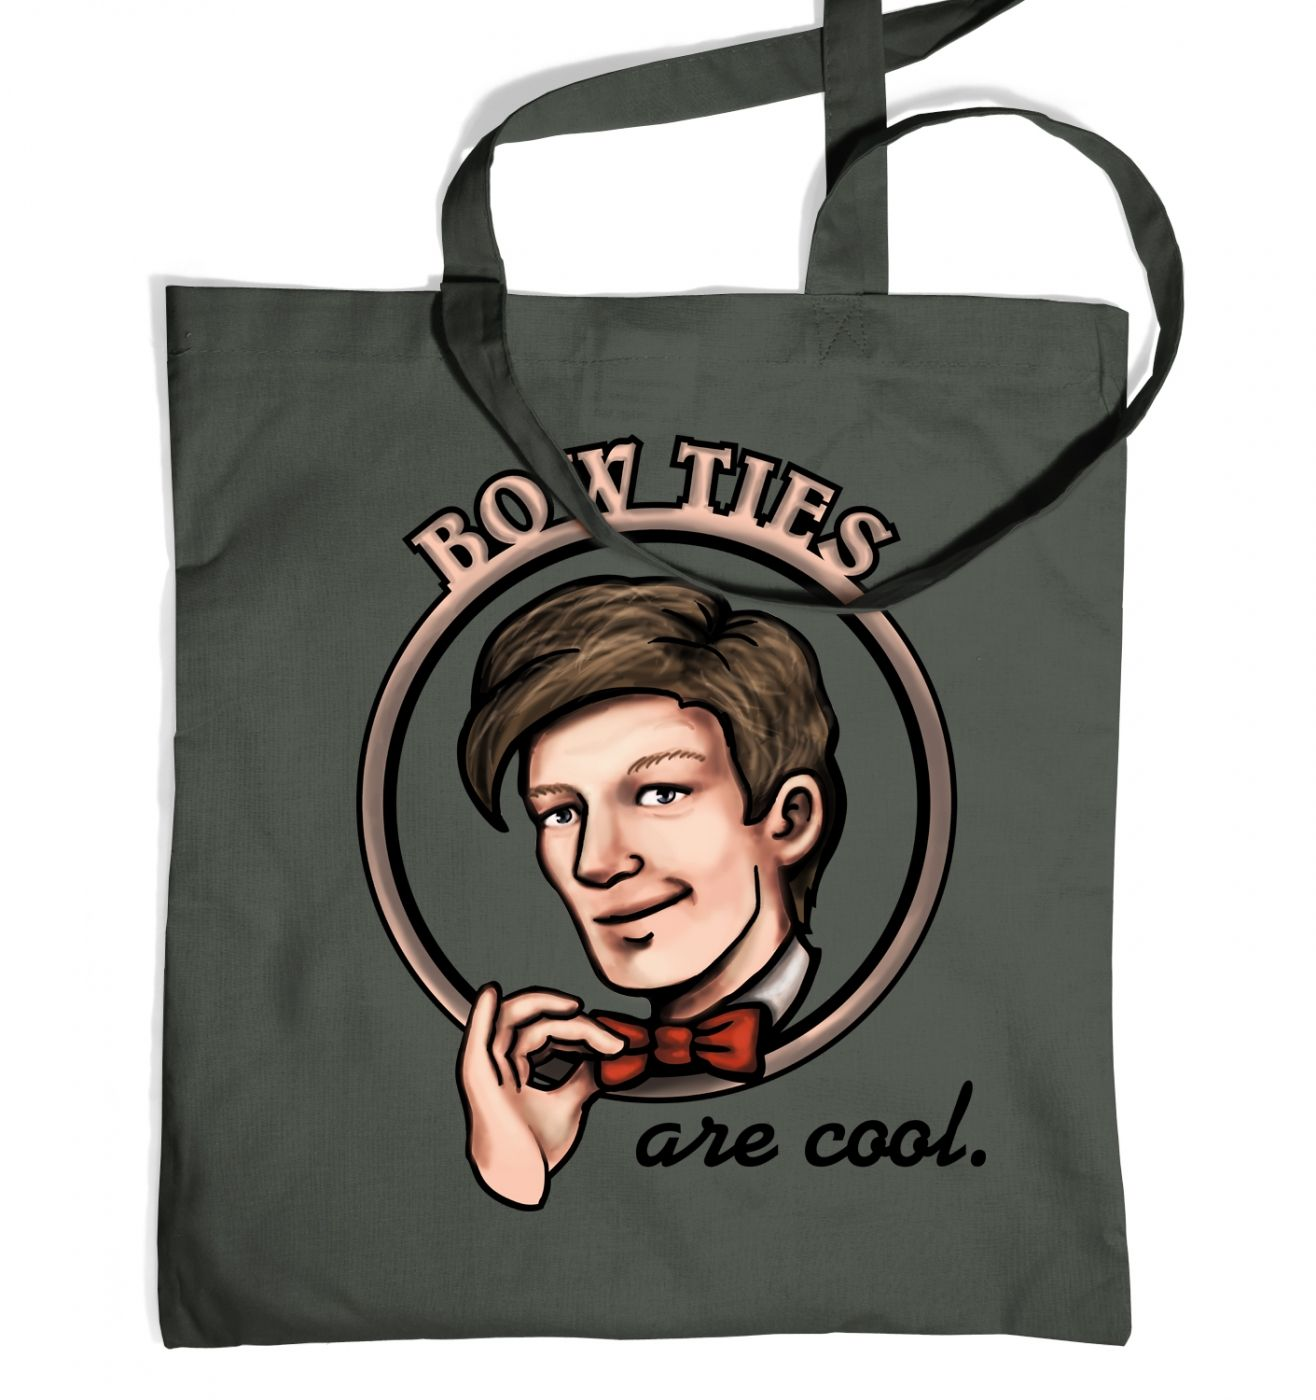 Bow Ties Are Cool tote bag